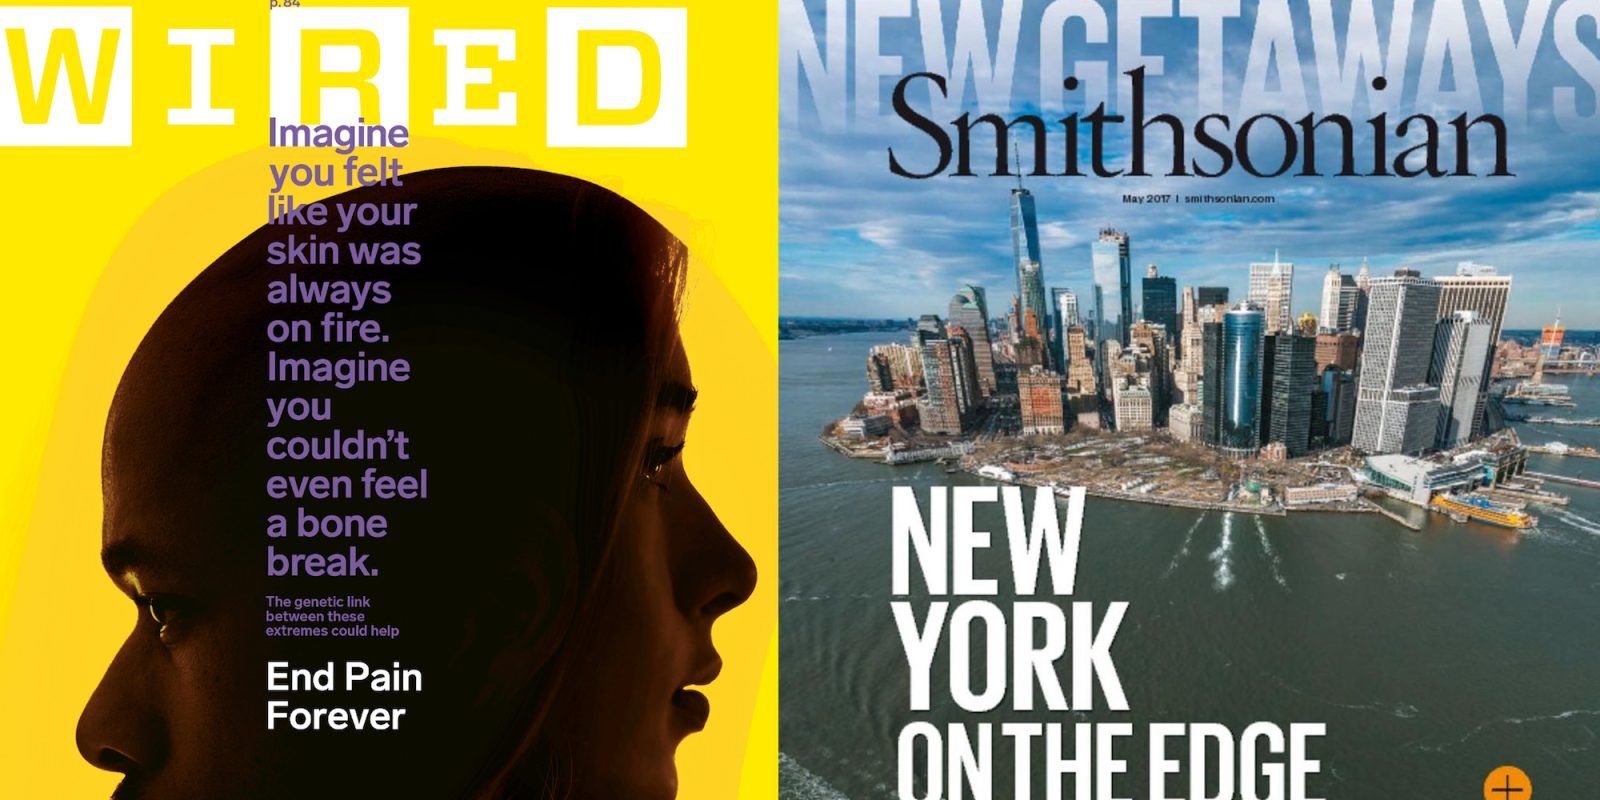 Wired, Dwell, GQ, Rolling Stone and more magazines from just over $4 ...